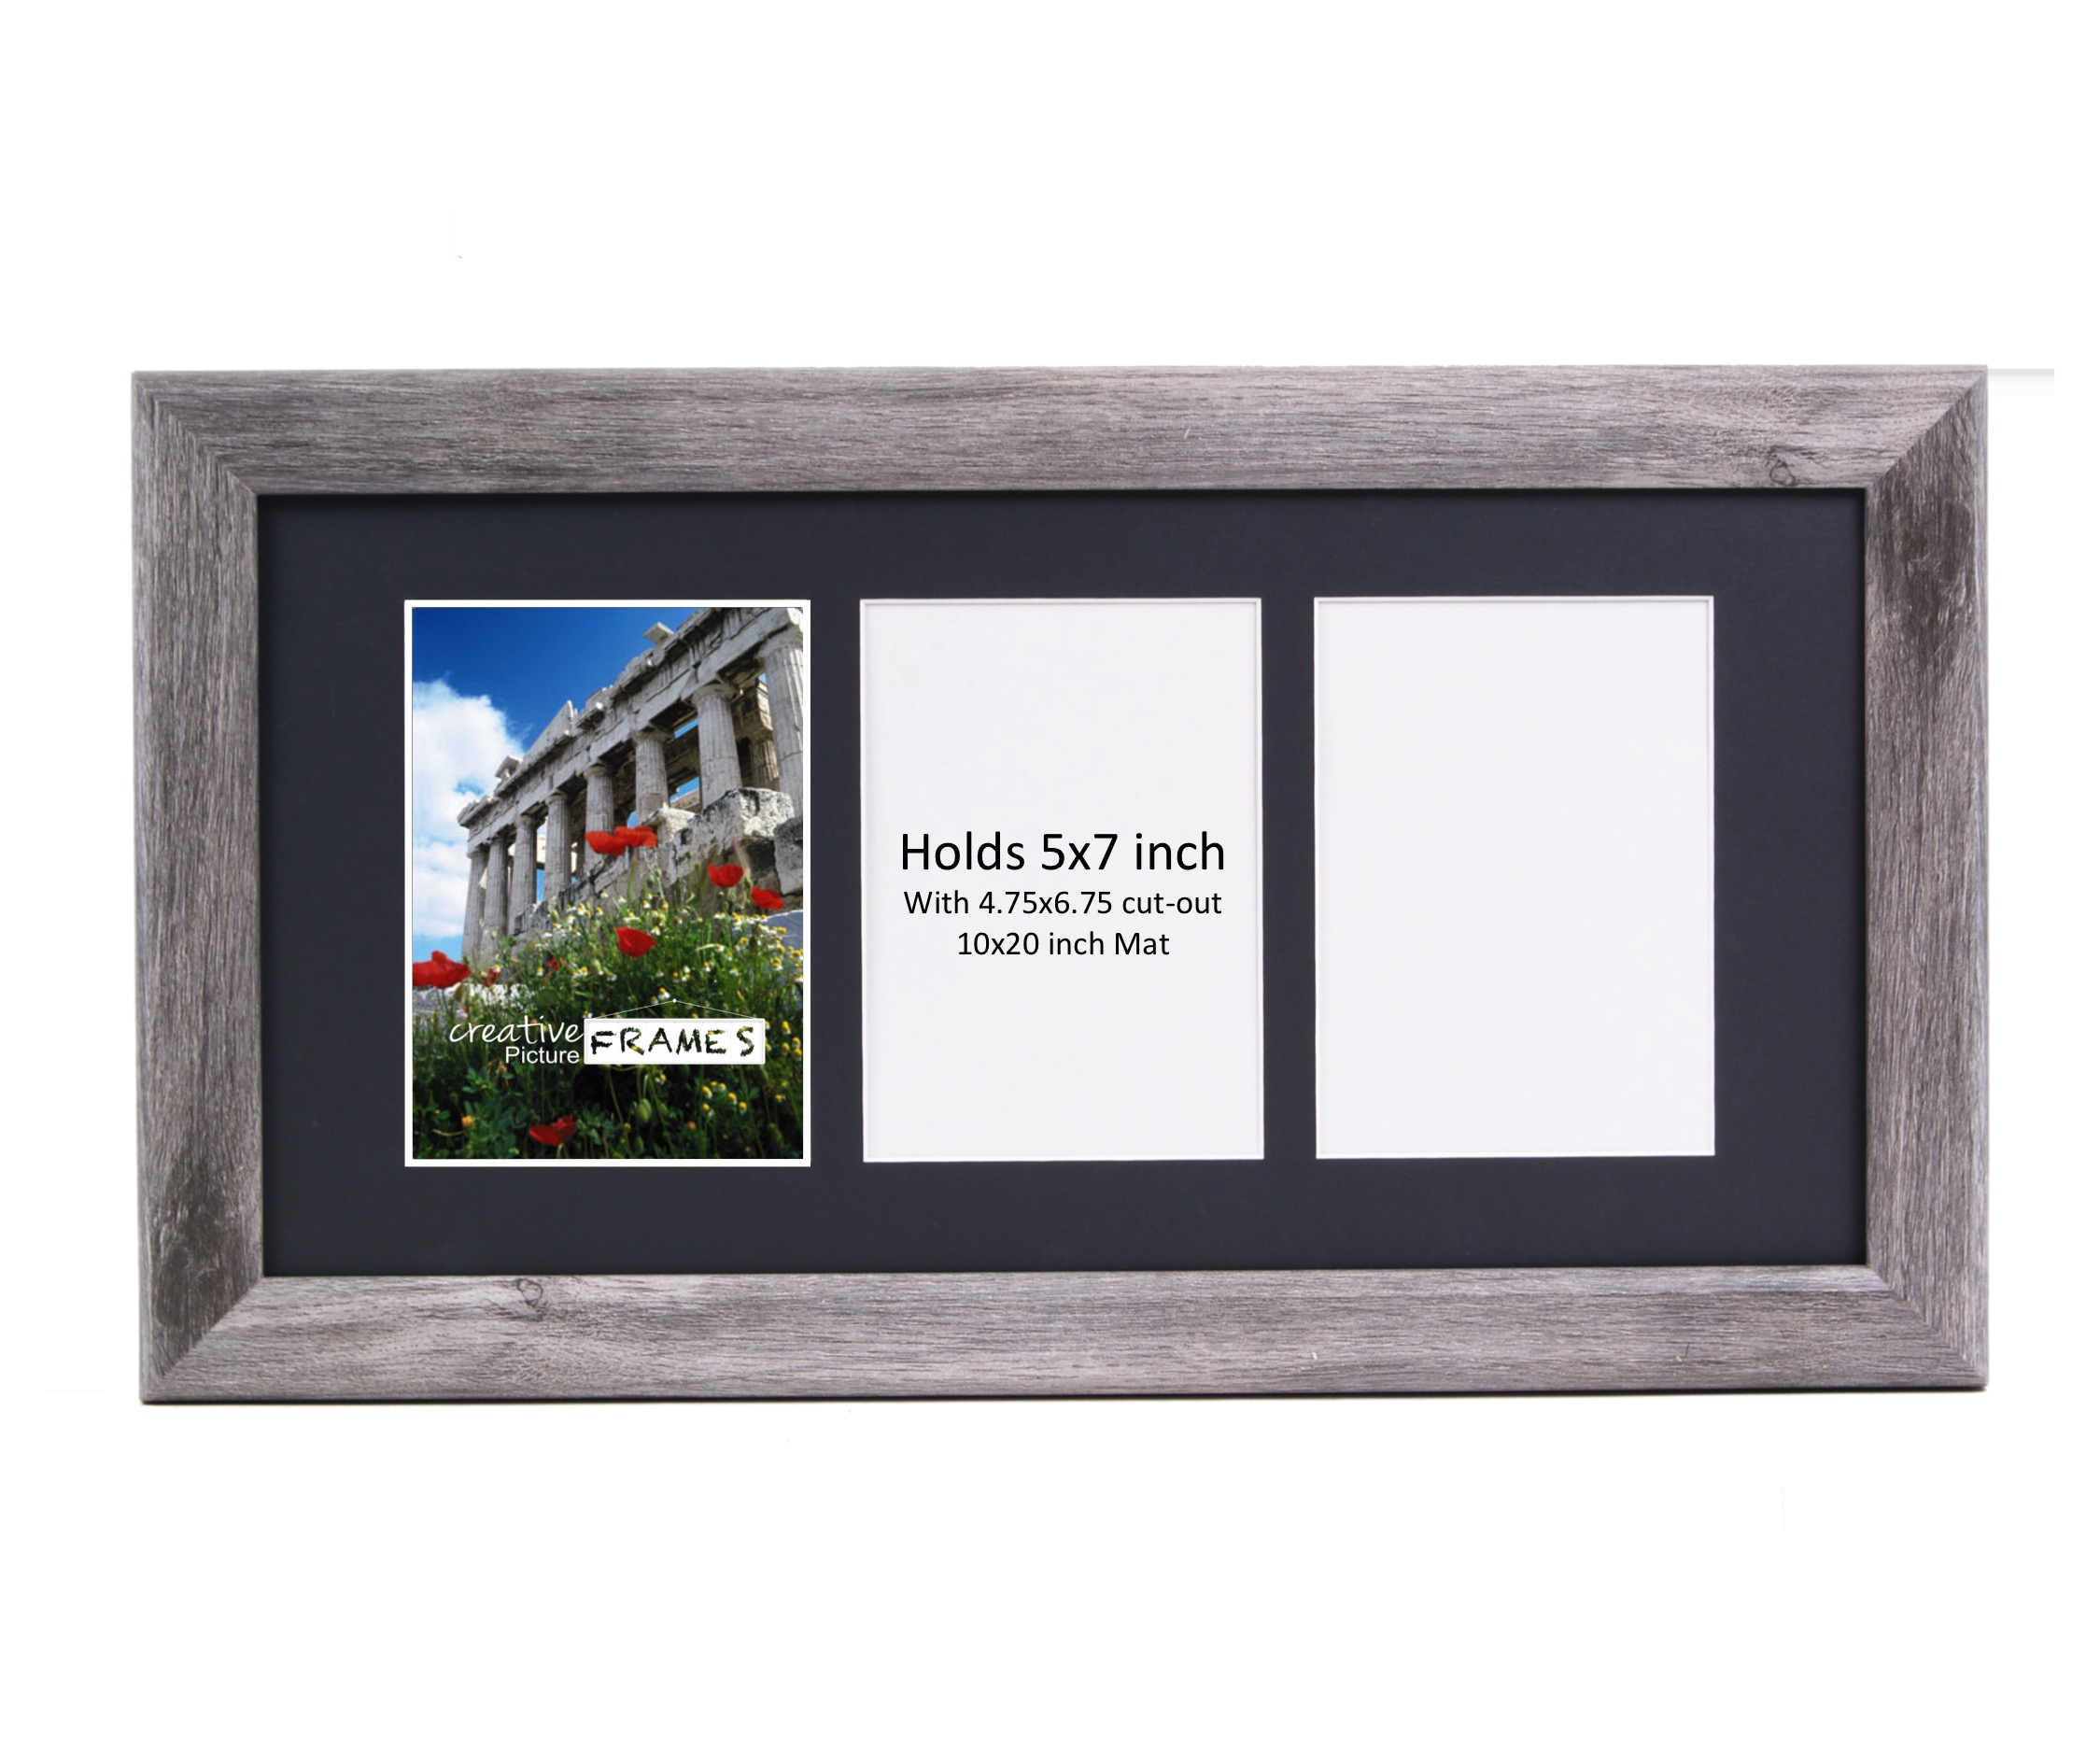 creativepf 3 opening driftwood picture frame with glass to hold 5 by 7 inch photographs including 10x20 inch black mat